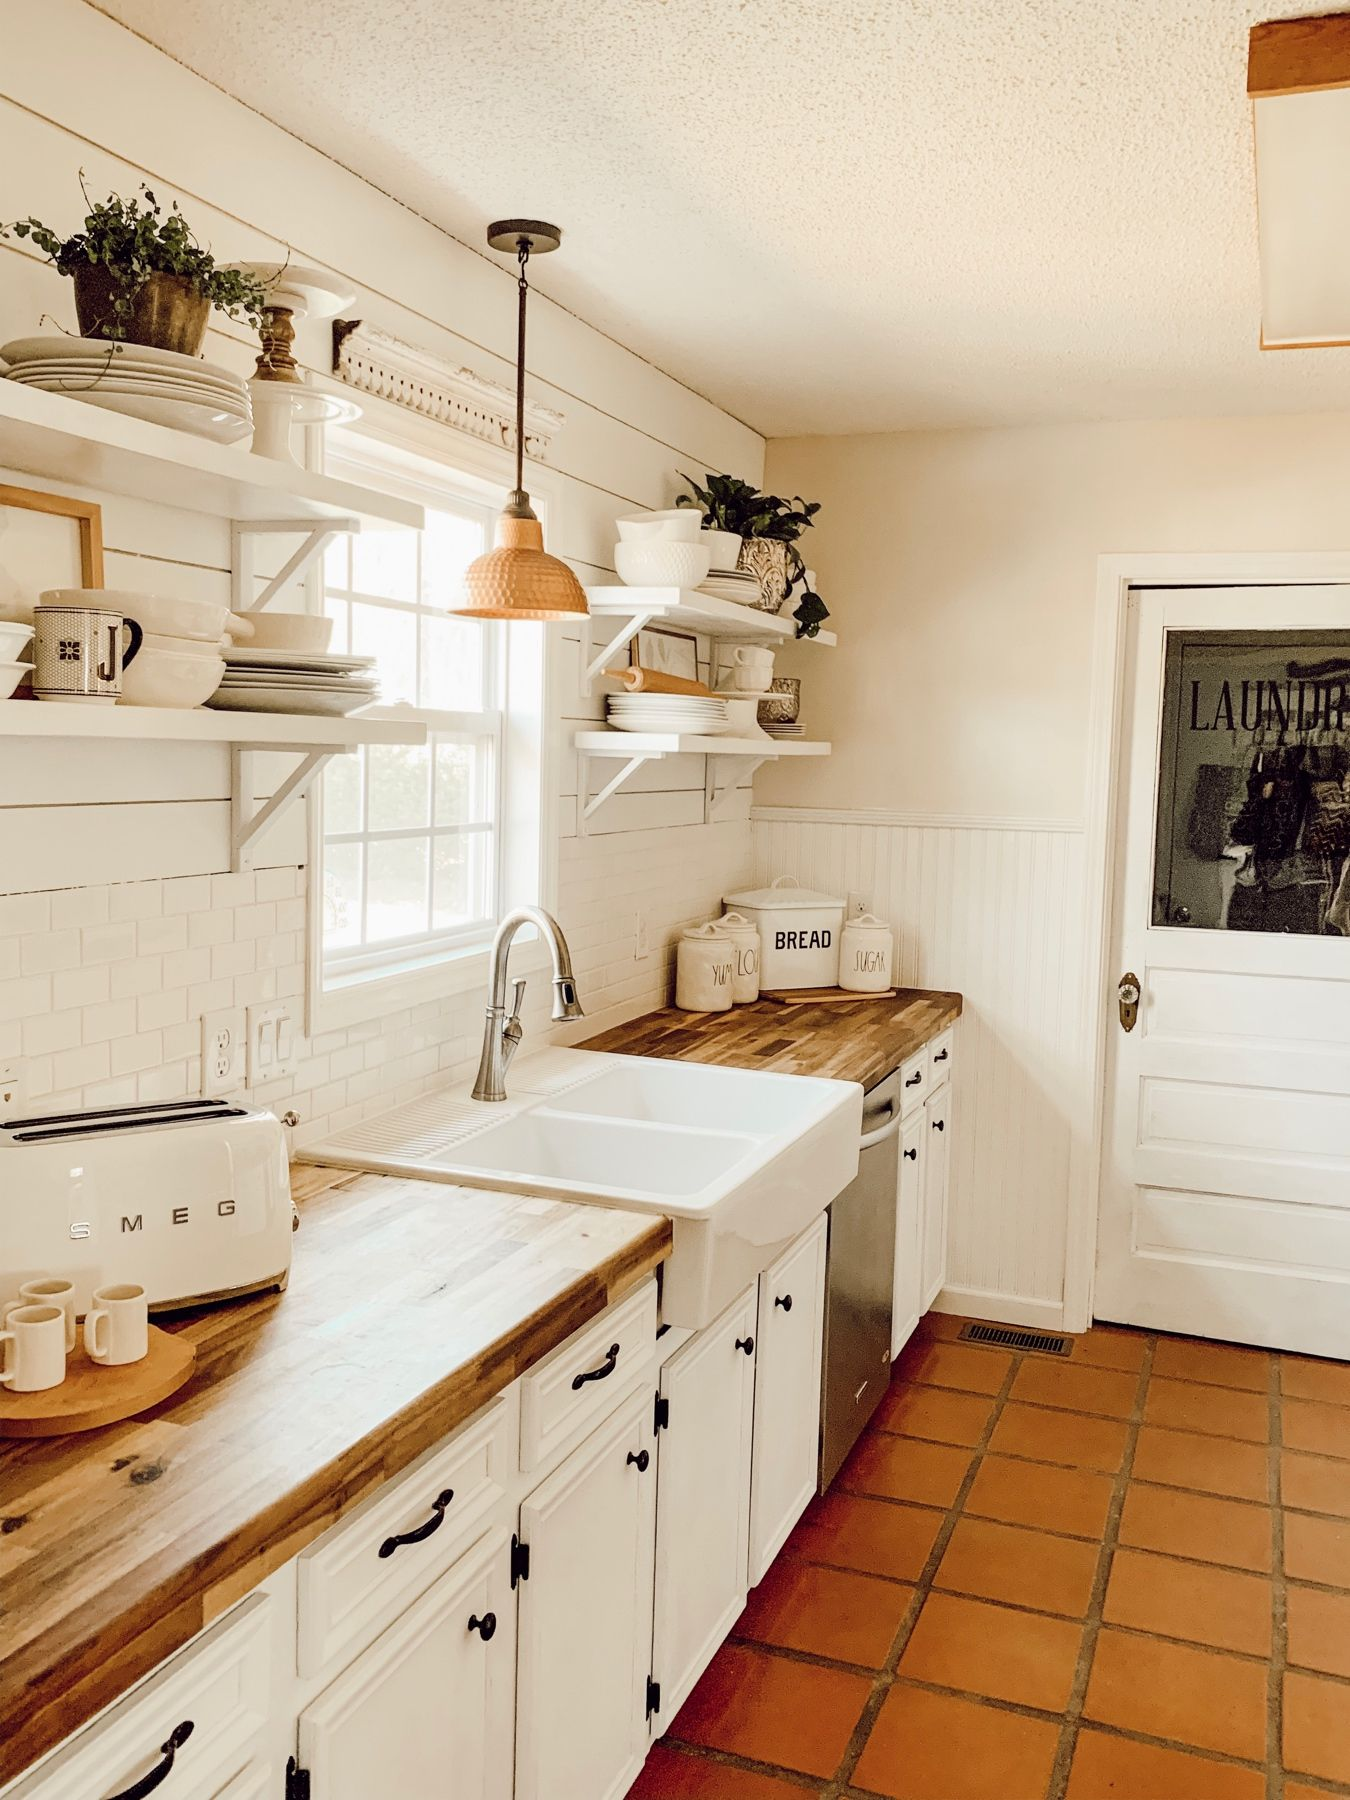 Taking Down Those Cabinets Are One Of My Favorite Changes In Our Whole Home The Lighting In 2020 Kitchen Remodel Small Cottage Kitchen Decor Modern Kitchen Appliances